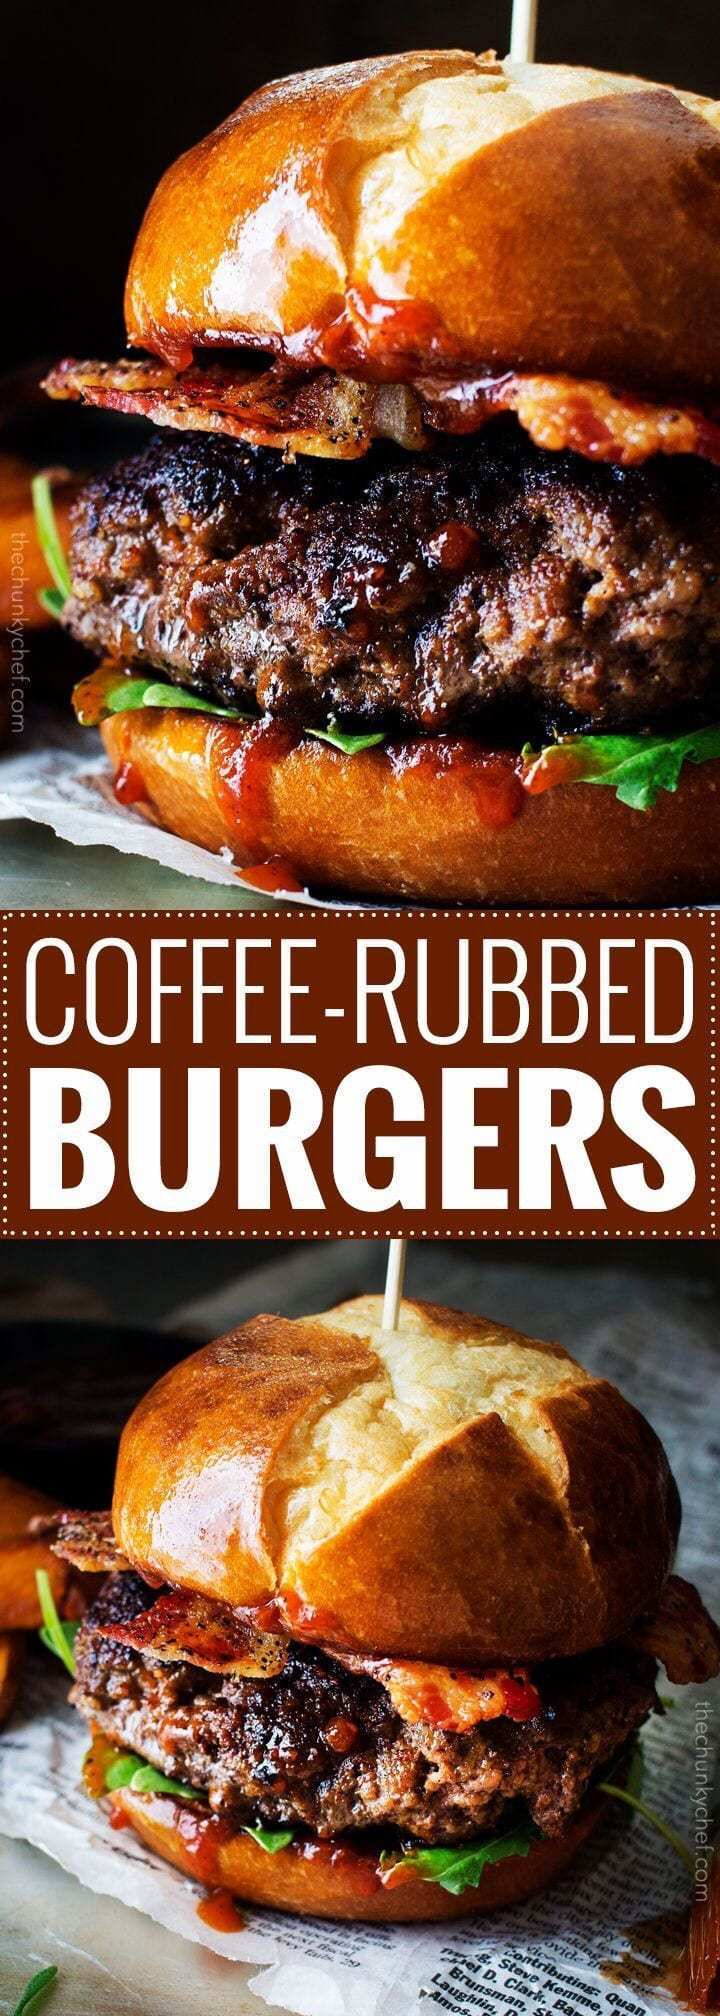 Coffee-Rubbed Burgers